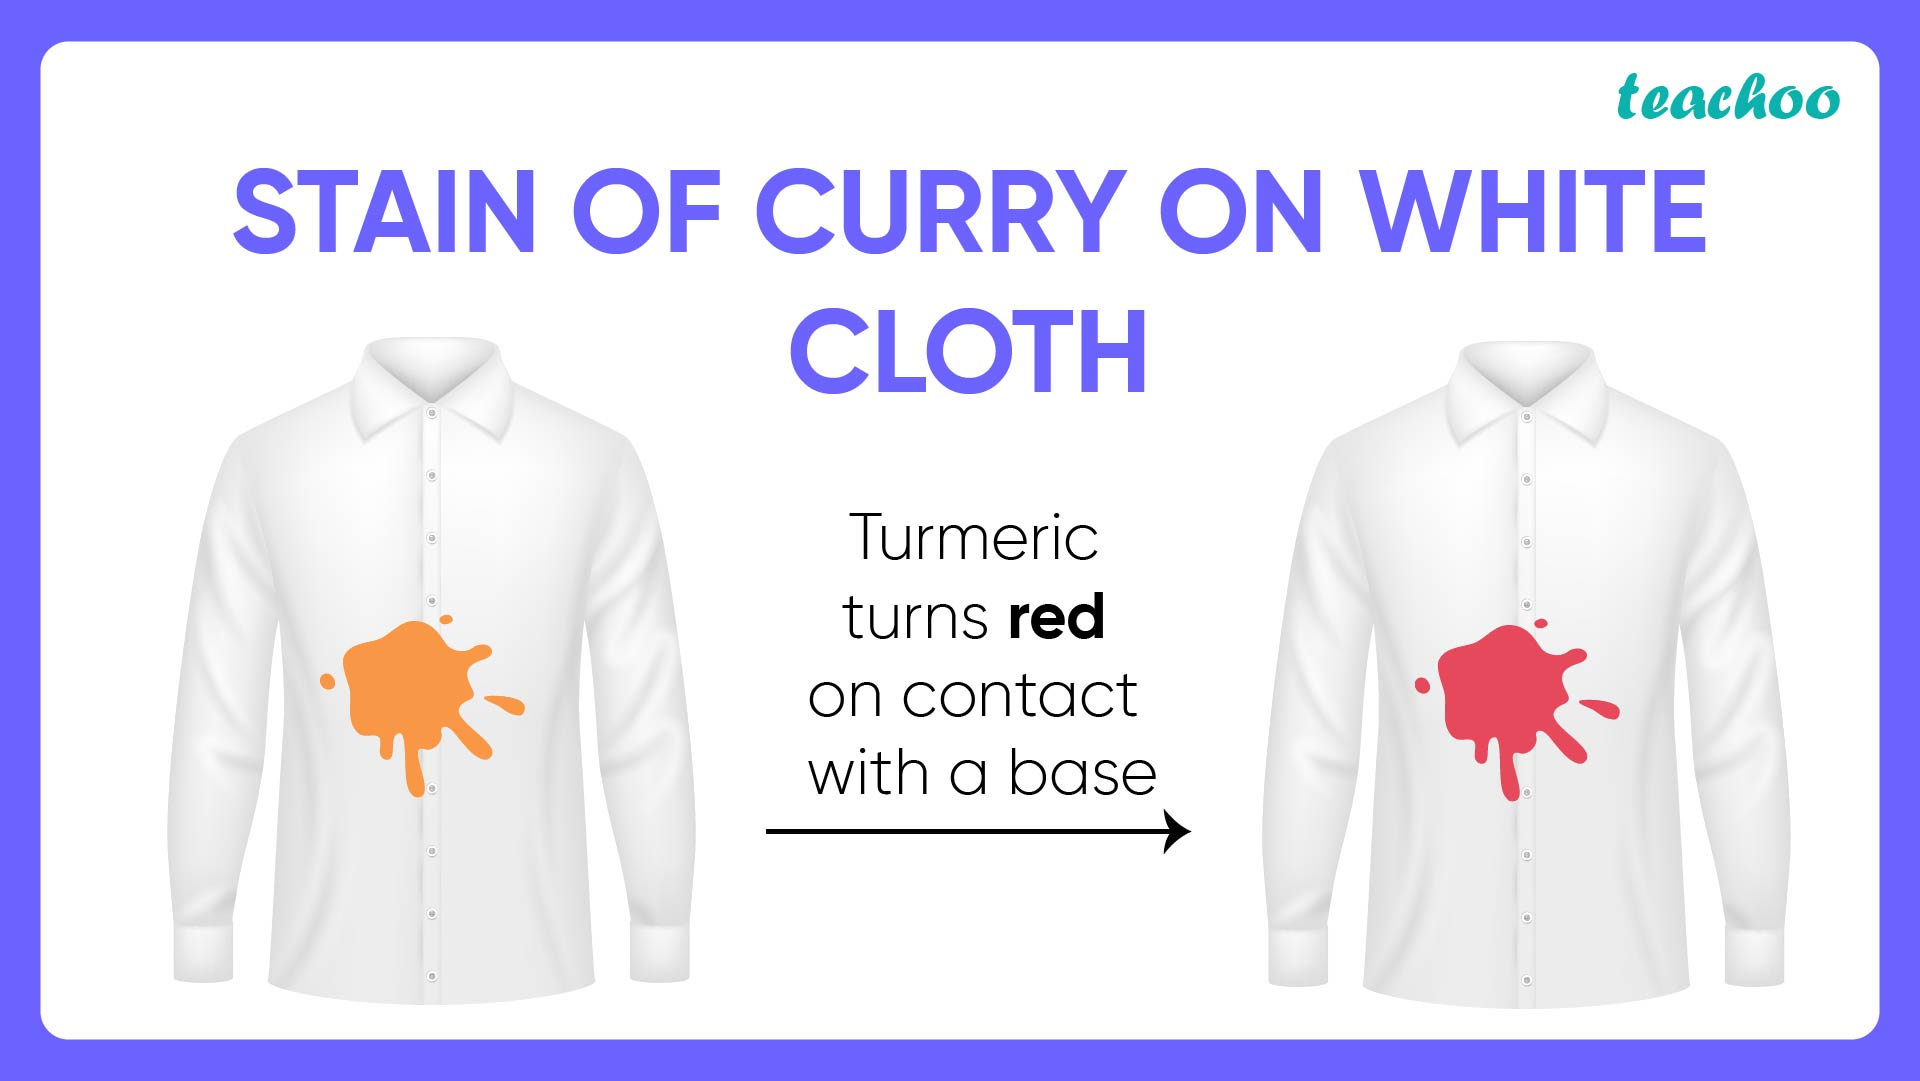 Stain of curry on white cloth-01.jpg